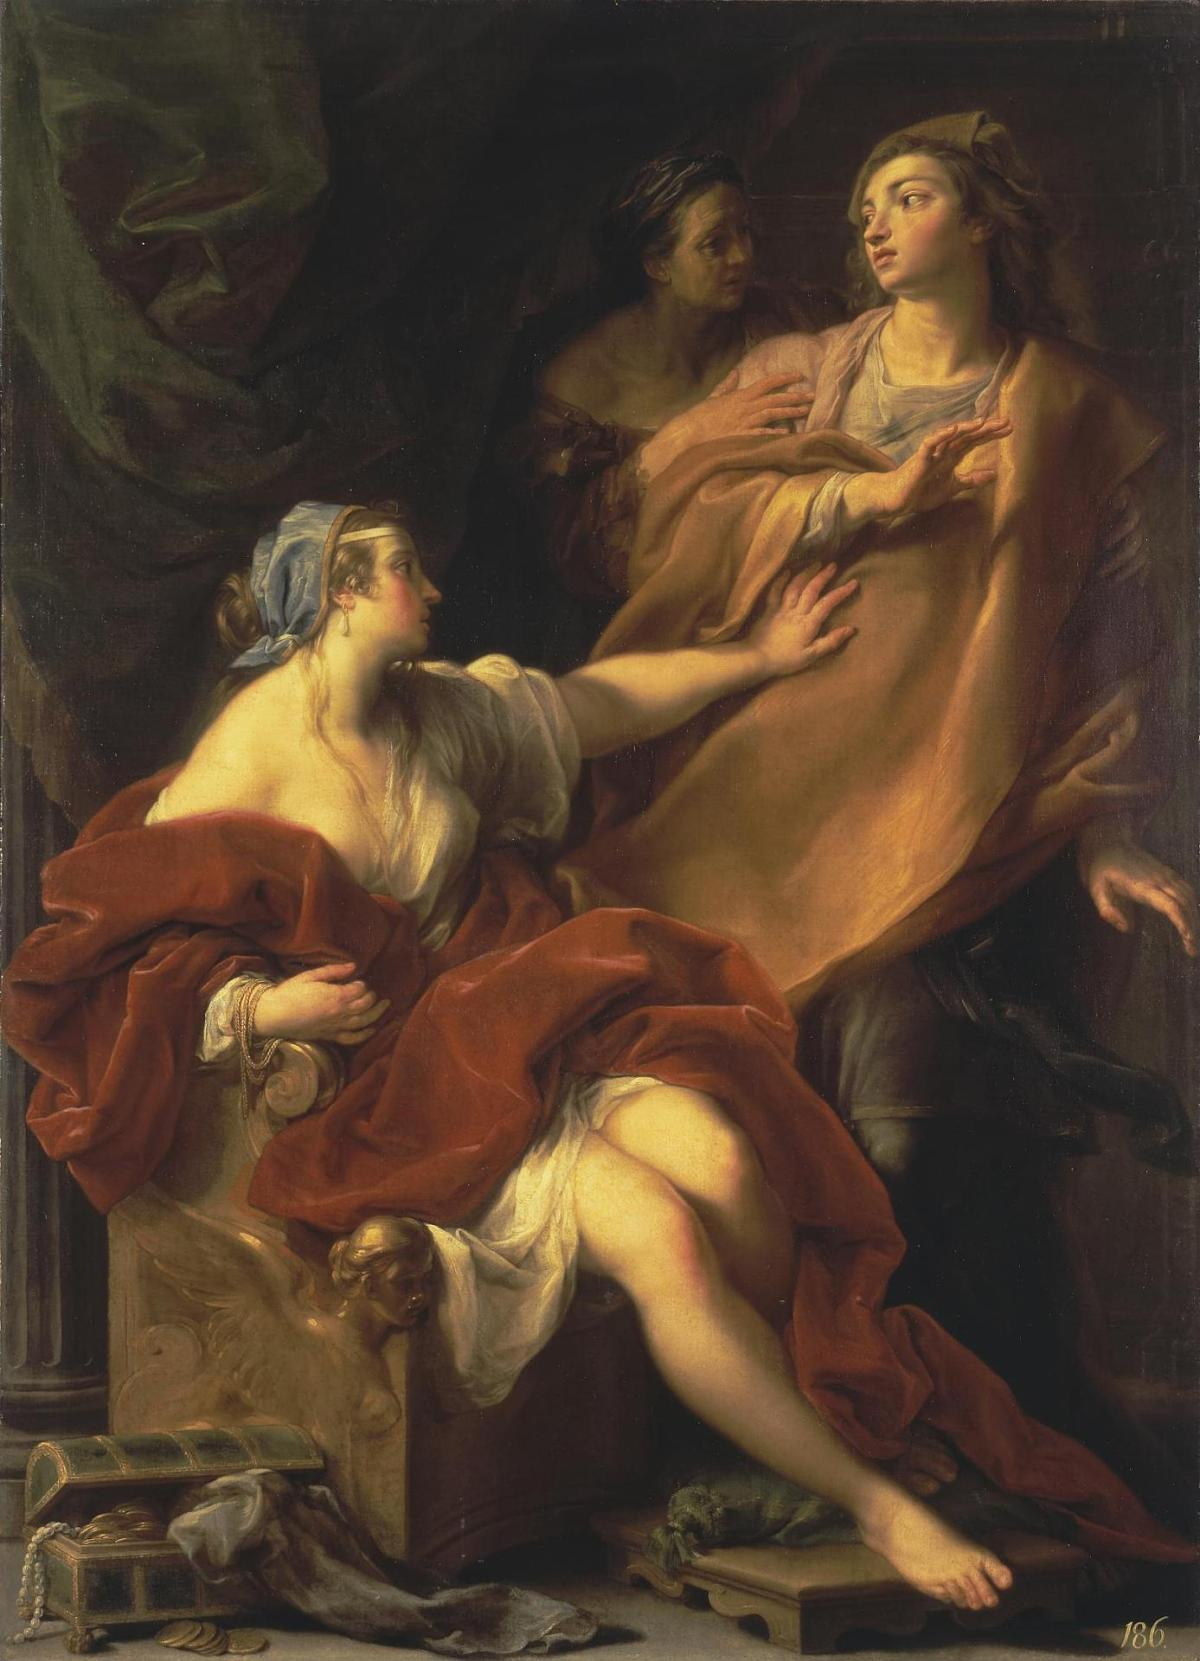 Allegory of Voluptuousness by Pompeo Girolamo Batoni